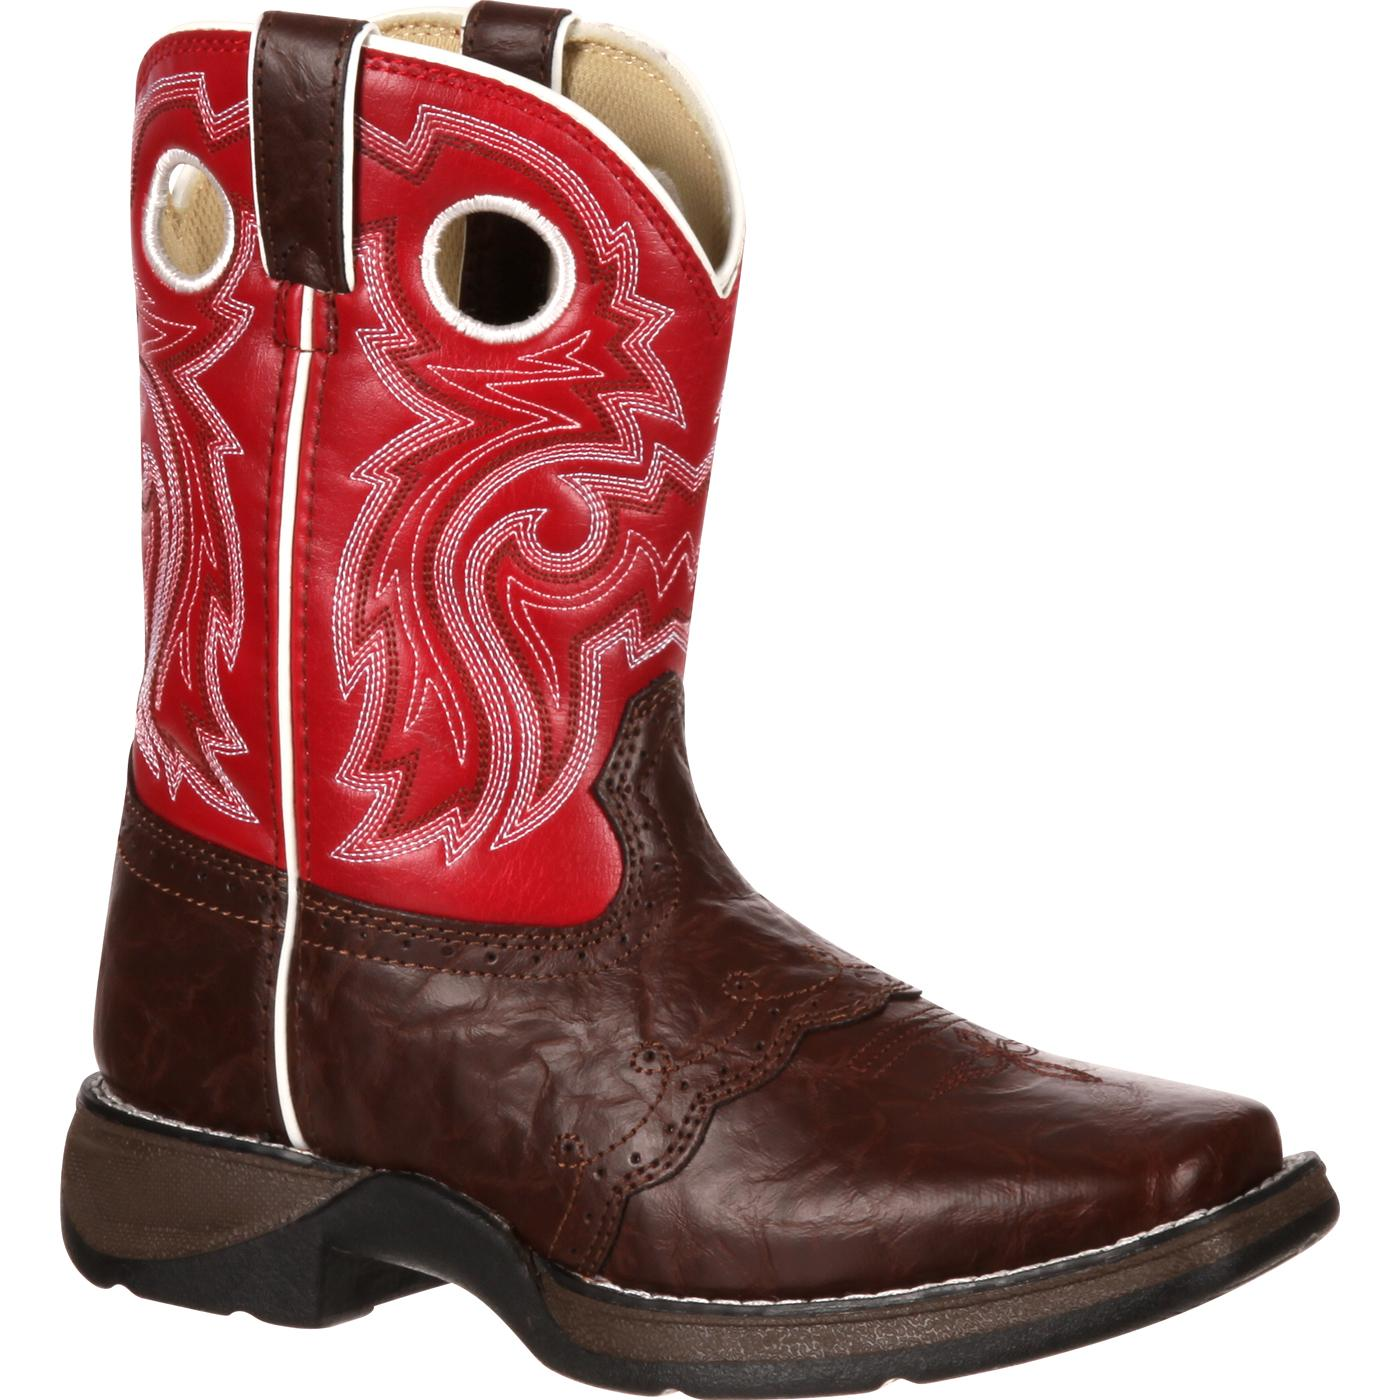 Lil39 Durango Kid39s Square Toe Pull On Western Boots